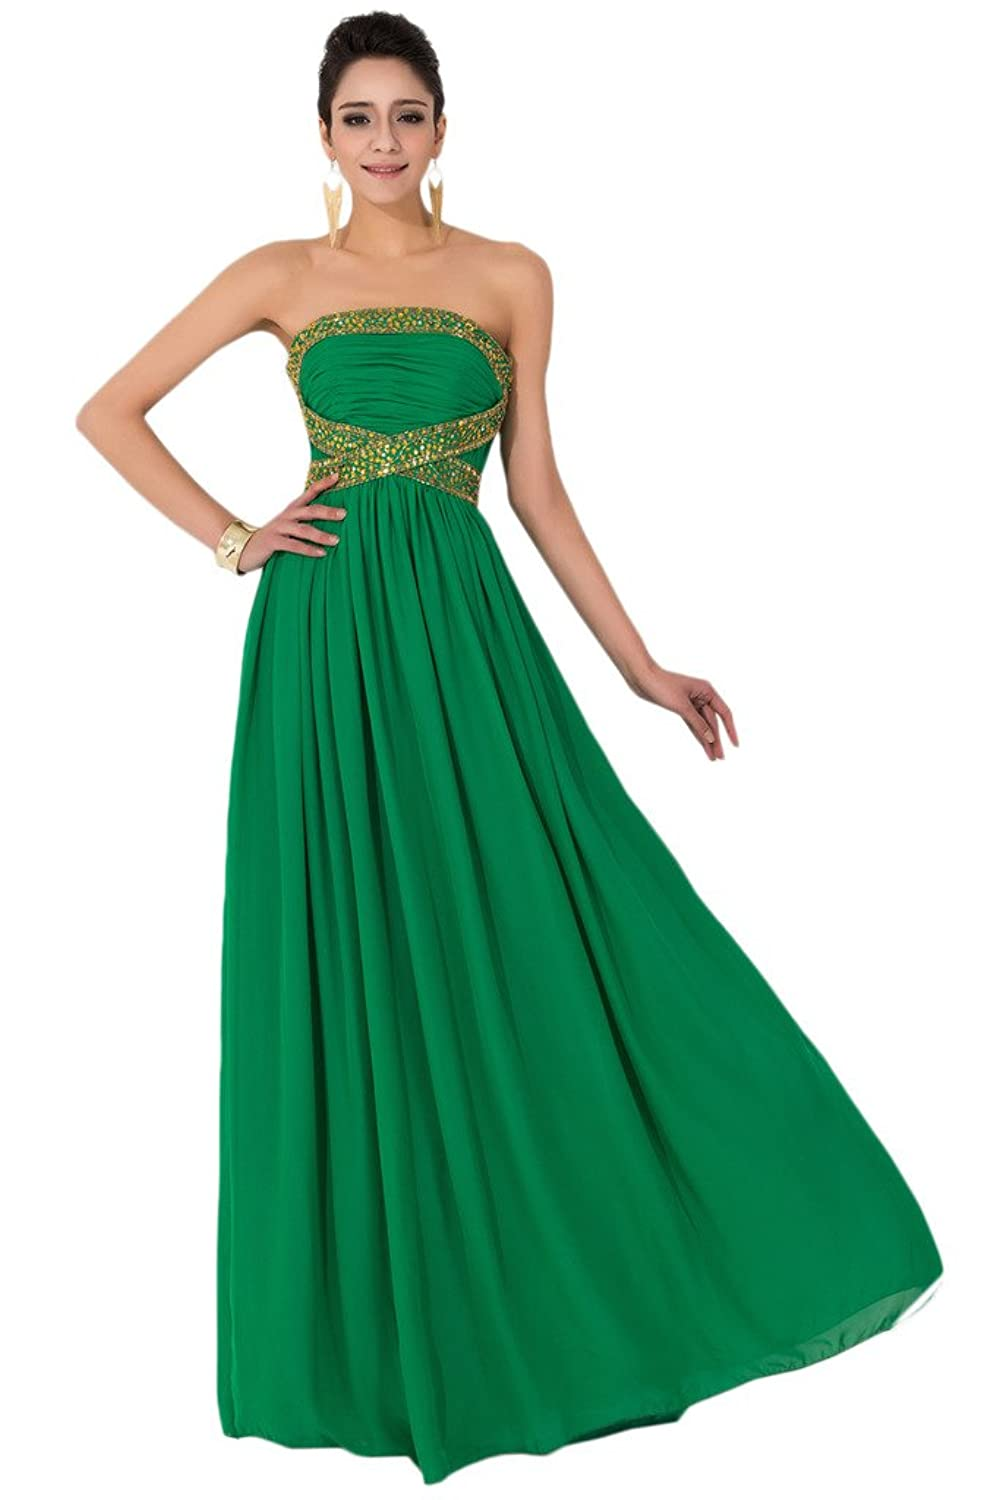 Sunvary Strapless Green Draped Ruffle Dresses for Evening Pageant Gowns